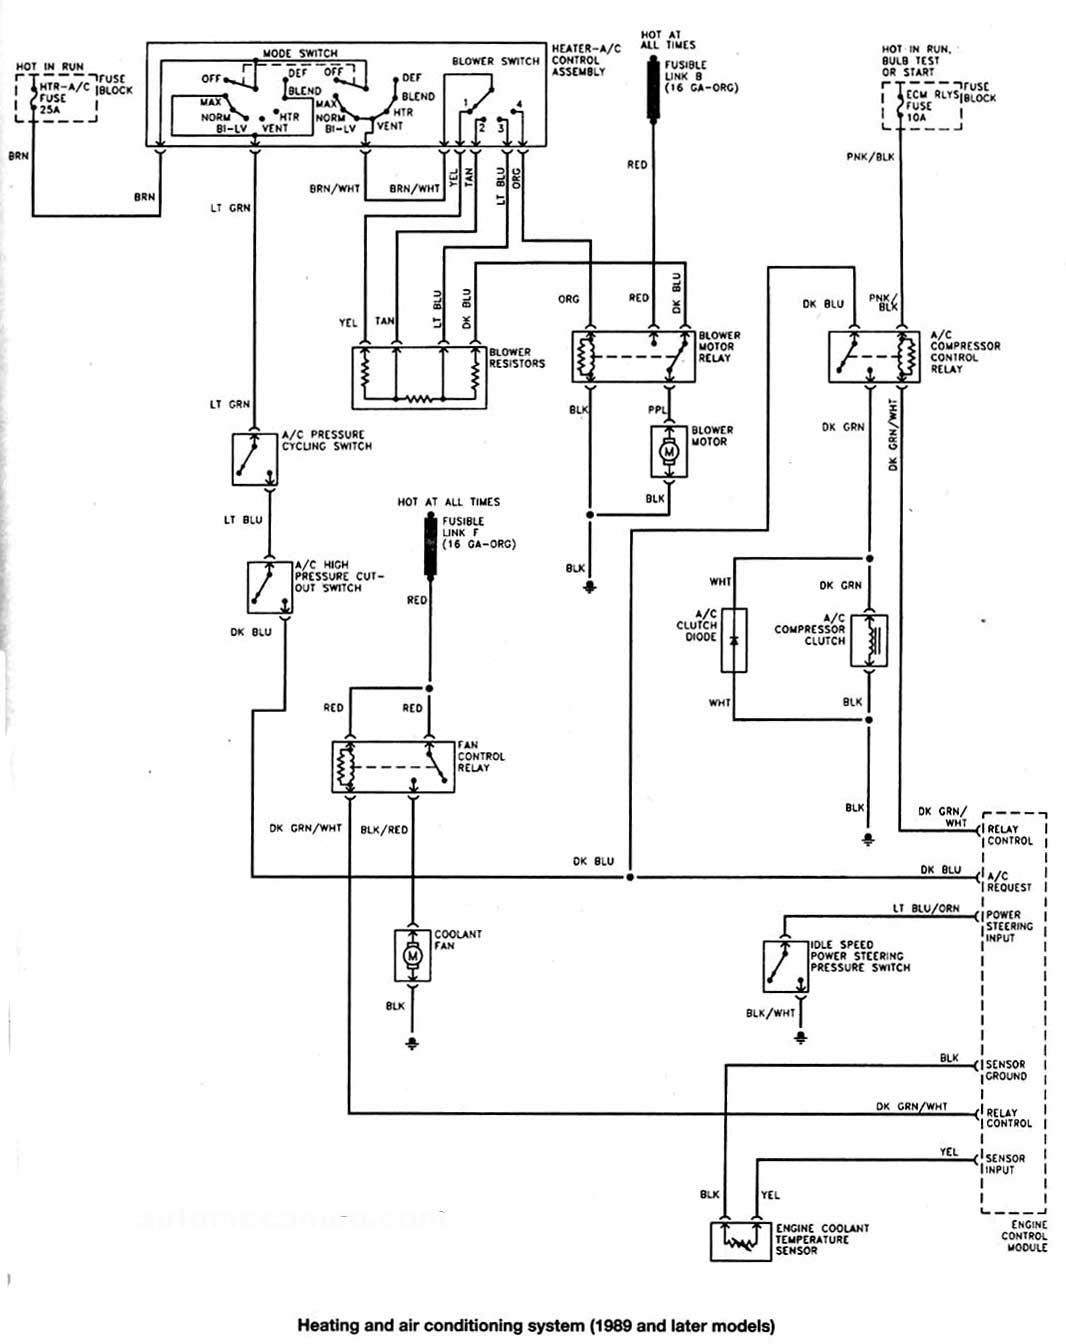 2003 Chrysler Voyager Wiring Diagram. 2000 Ford F350 ...